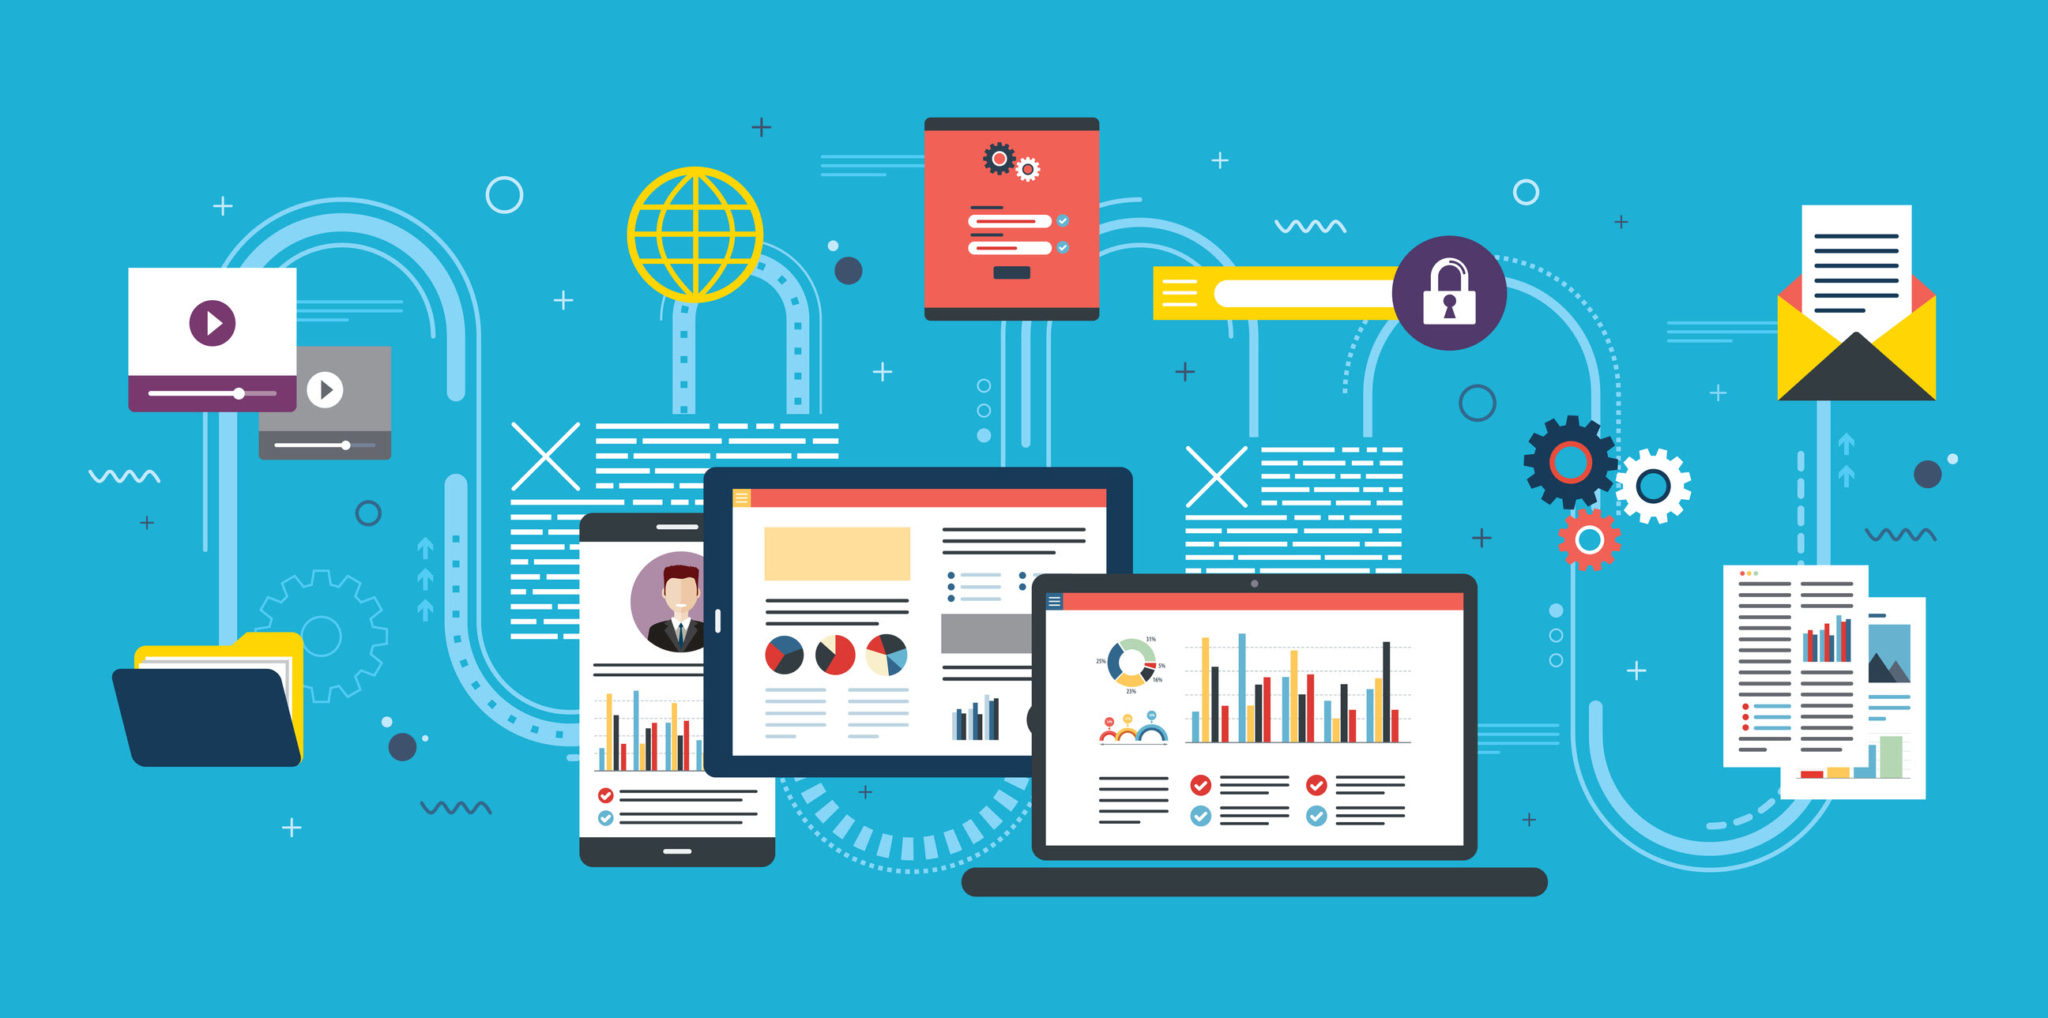 Digital Marketing: The changing trends in 2019